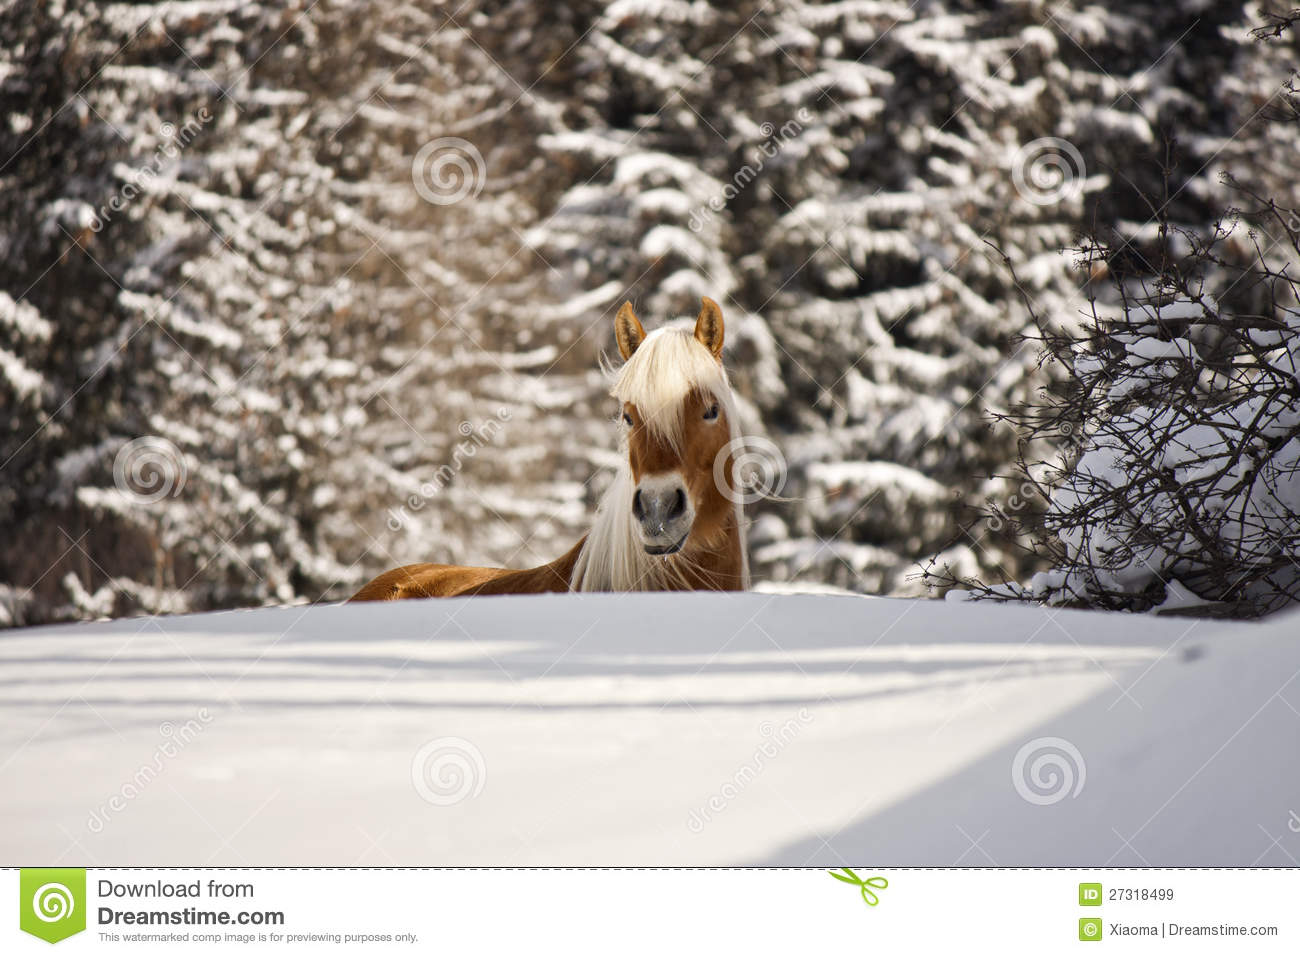 Horse in a winter landscape